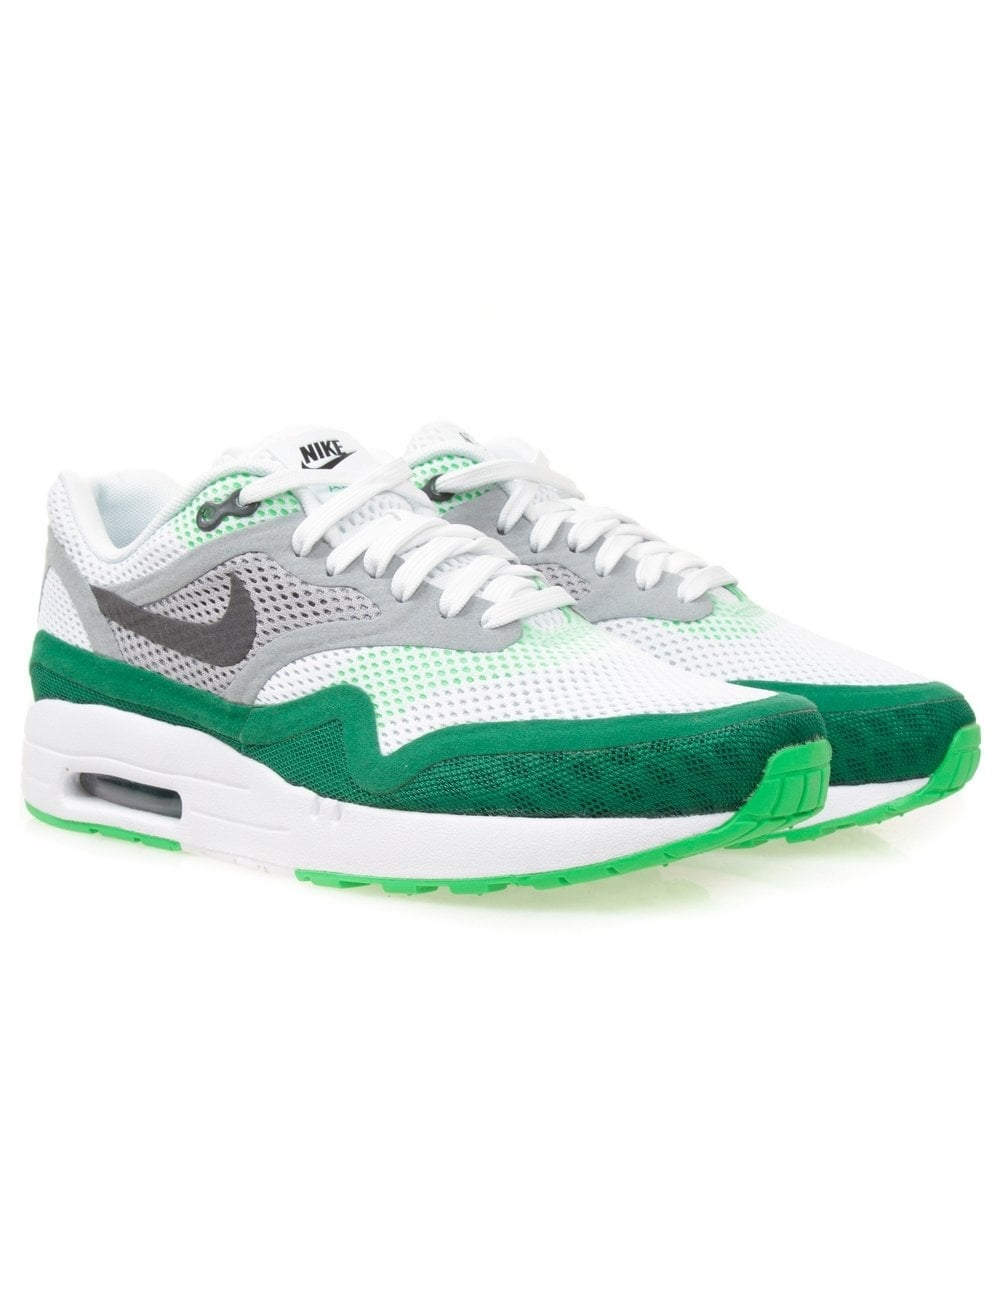 nike air max 1 breathe white pine green nike from fat. Black Bedroom Furniture Sets. Home Design Ideas